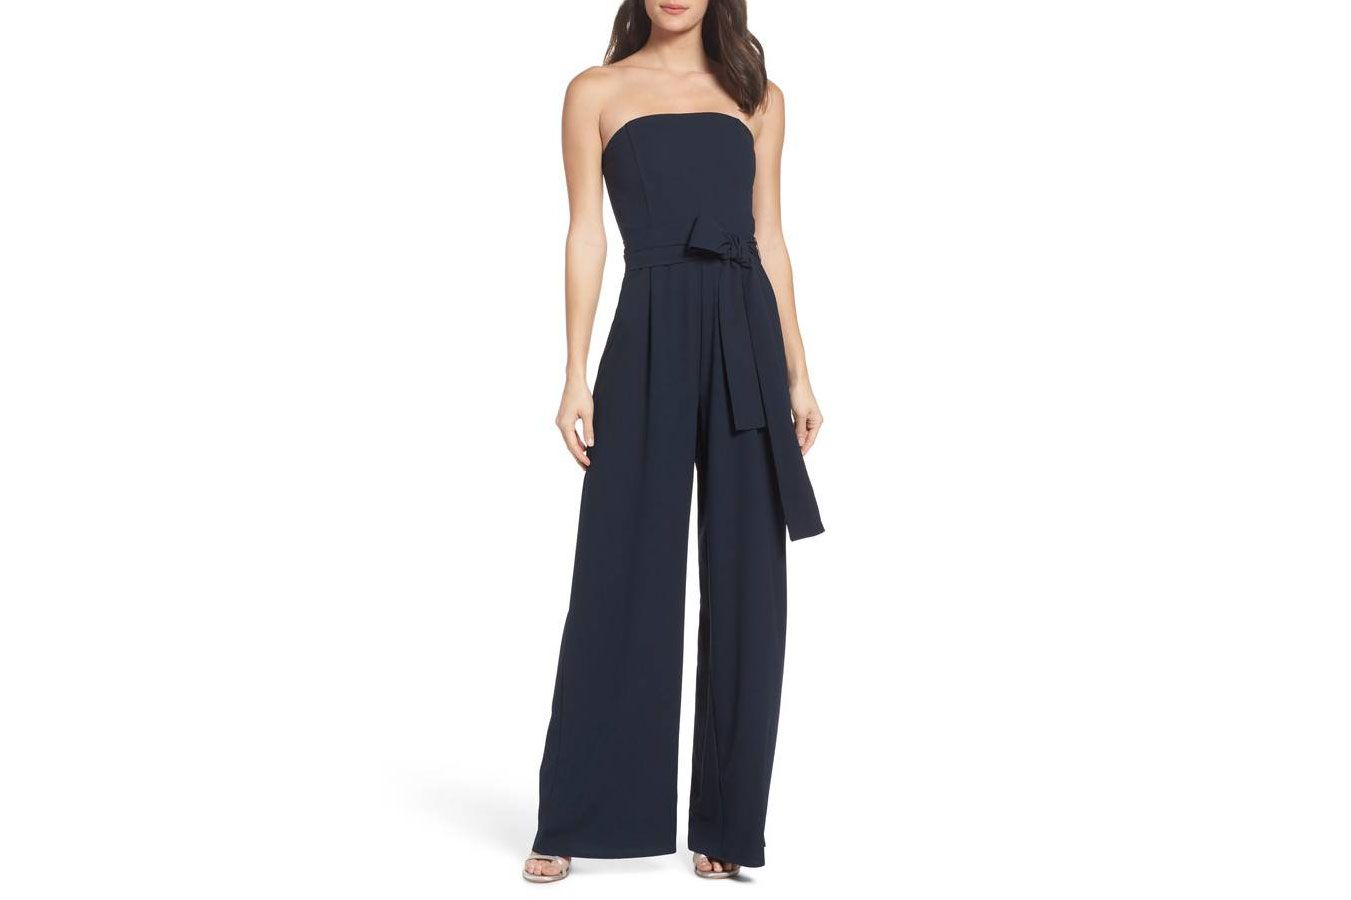 bb3eb9c99c 15 Dressy Jumpsuits to Wear to a Wedding 2018